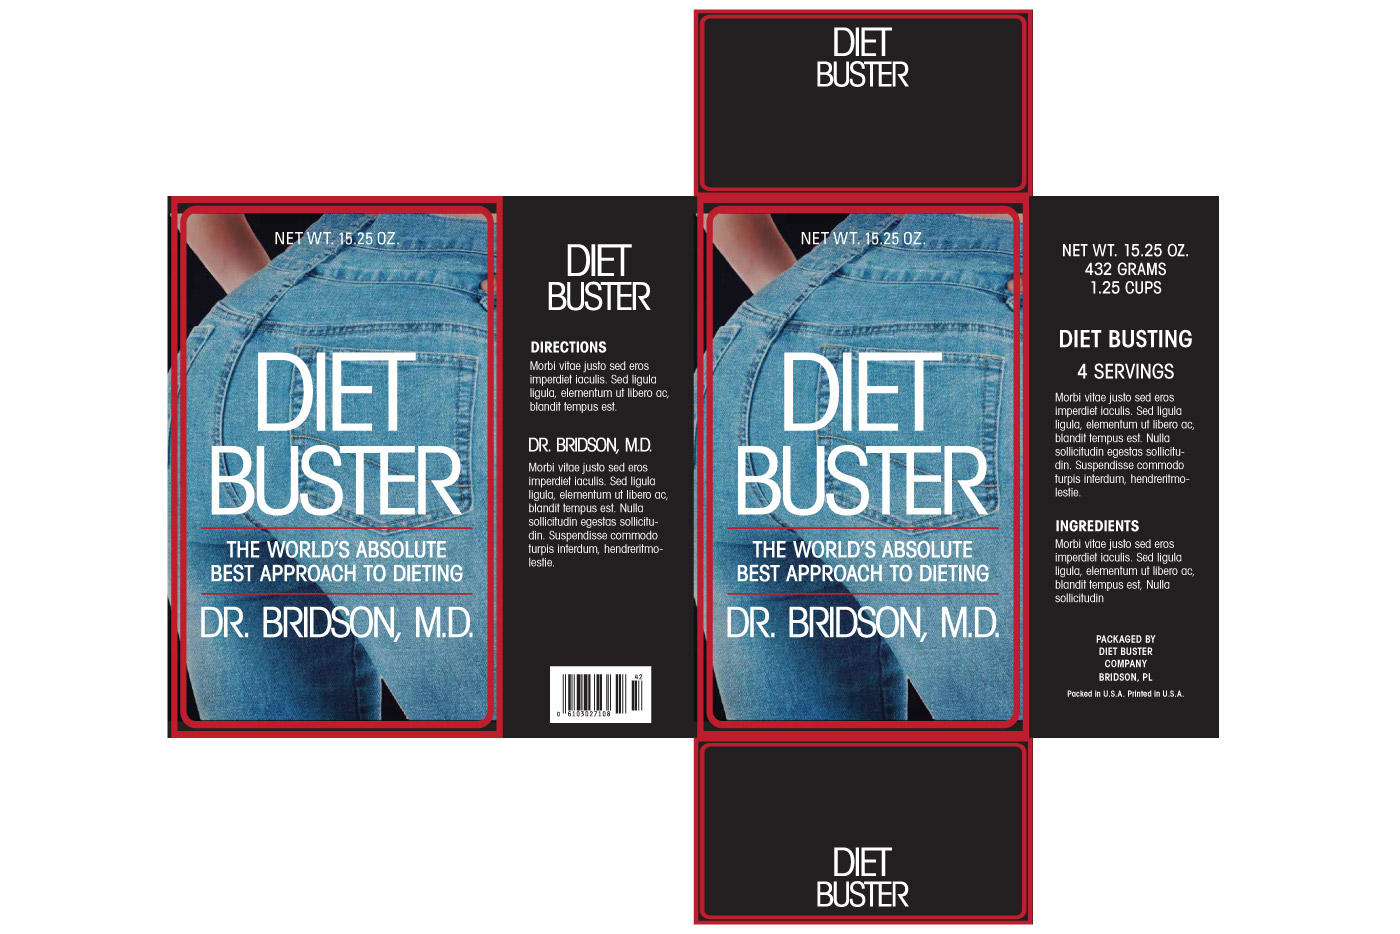 diet buster box graphic